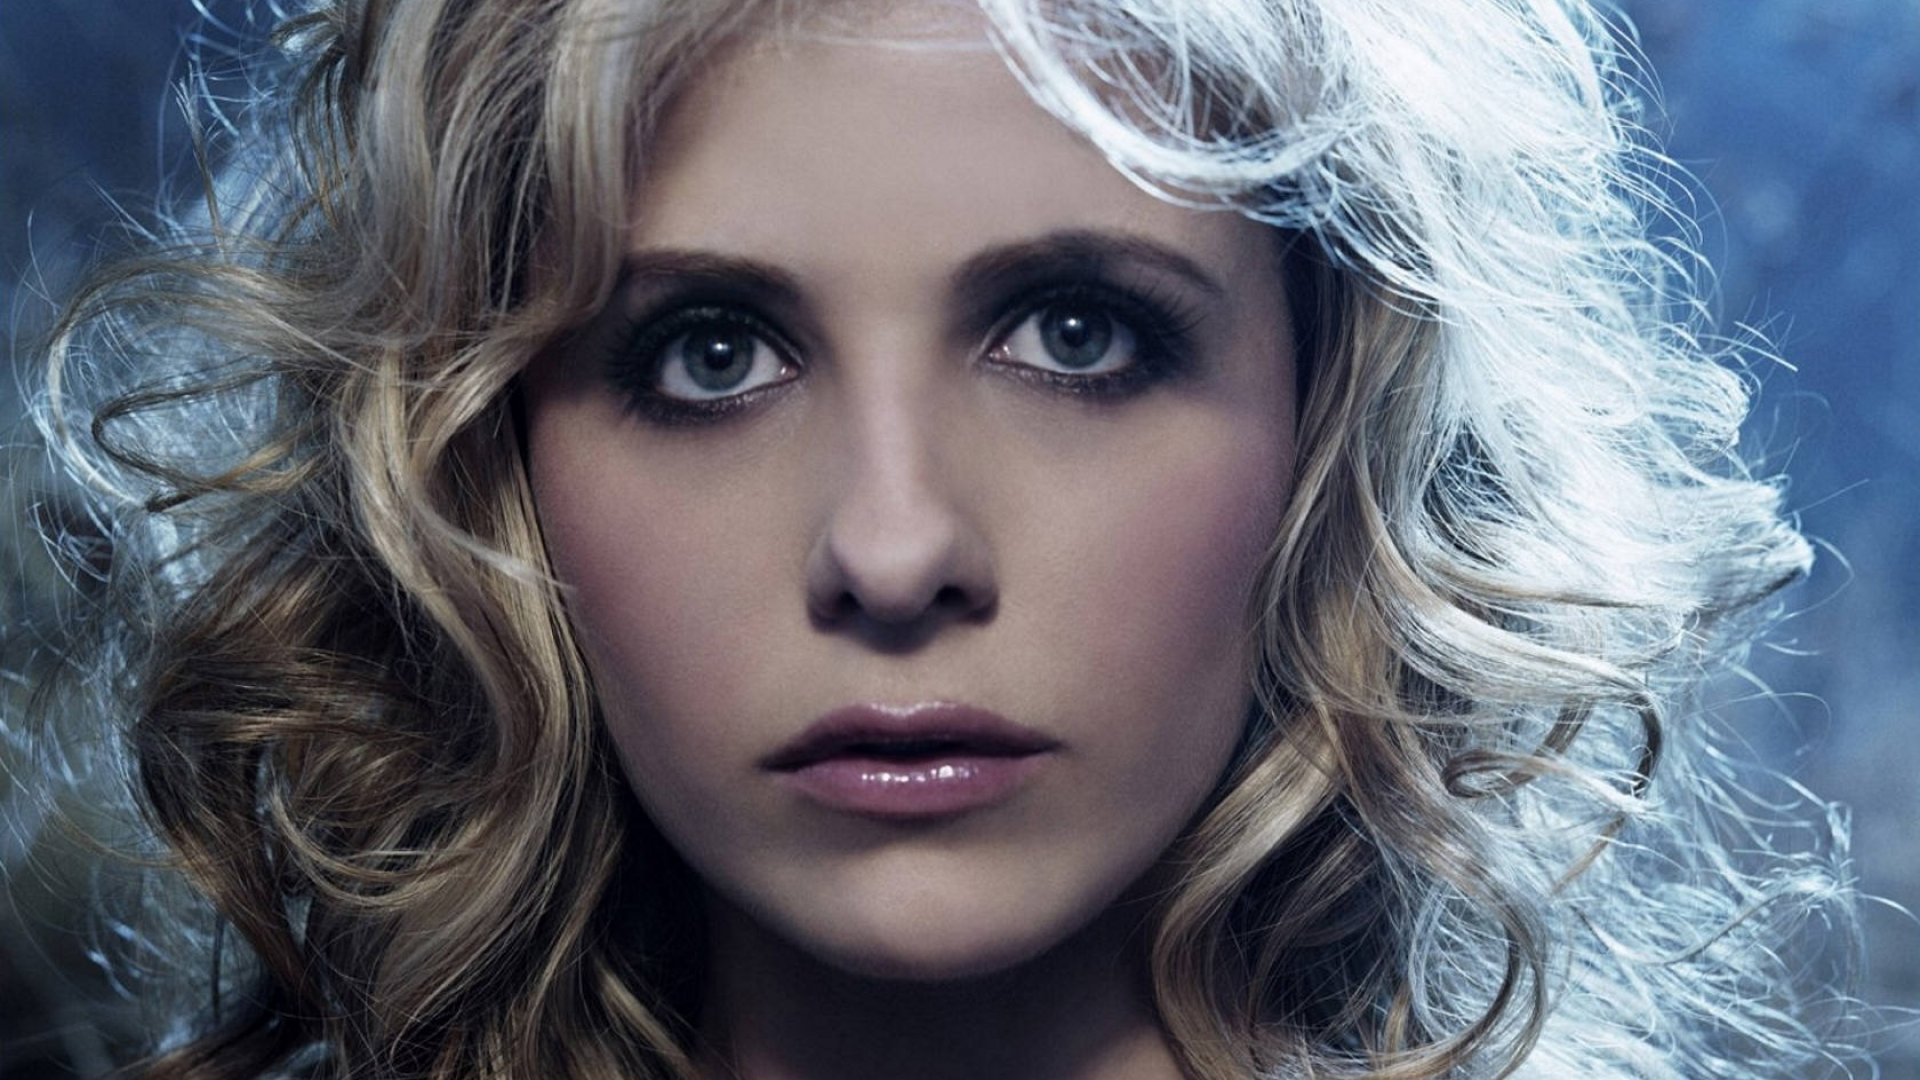 Download full hd 1920x1080 Sarah Michelle Gellar PC background ID:187847 for free